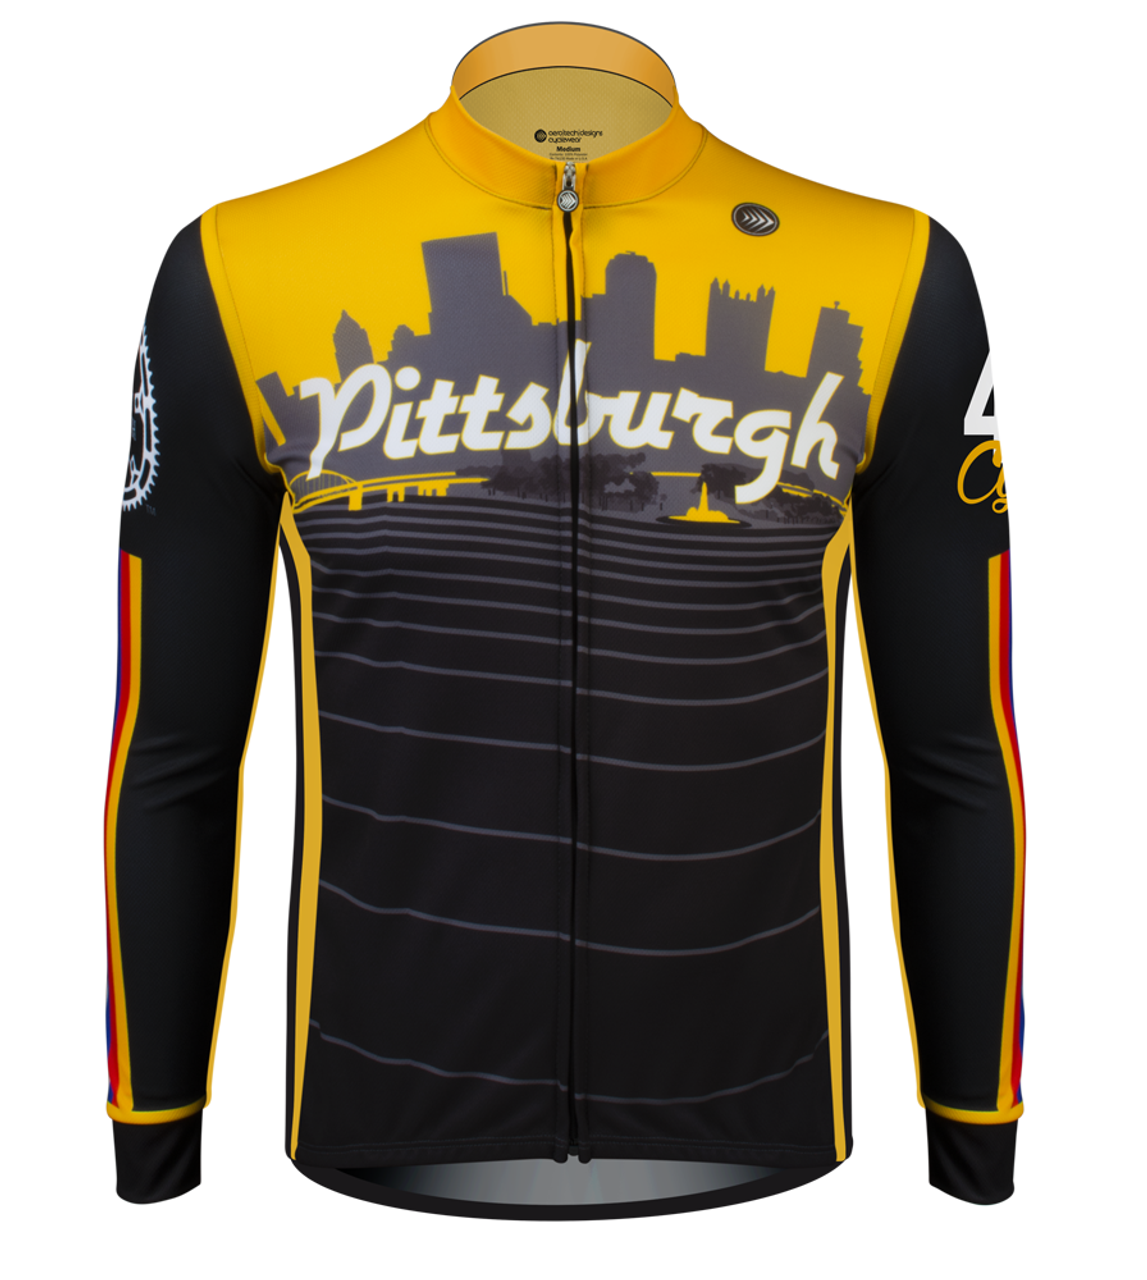 ATD Pittsburgh Long Sleeve Bike Jersey - Made in USA 4f9961a22